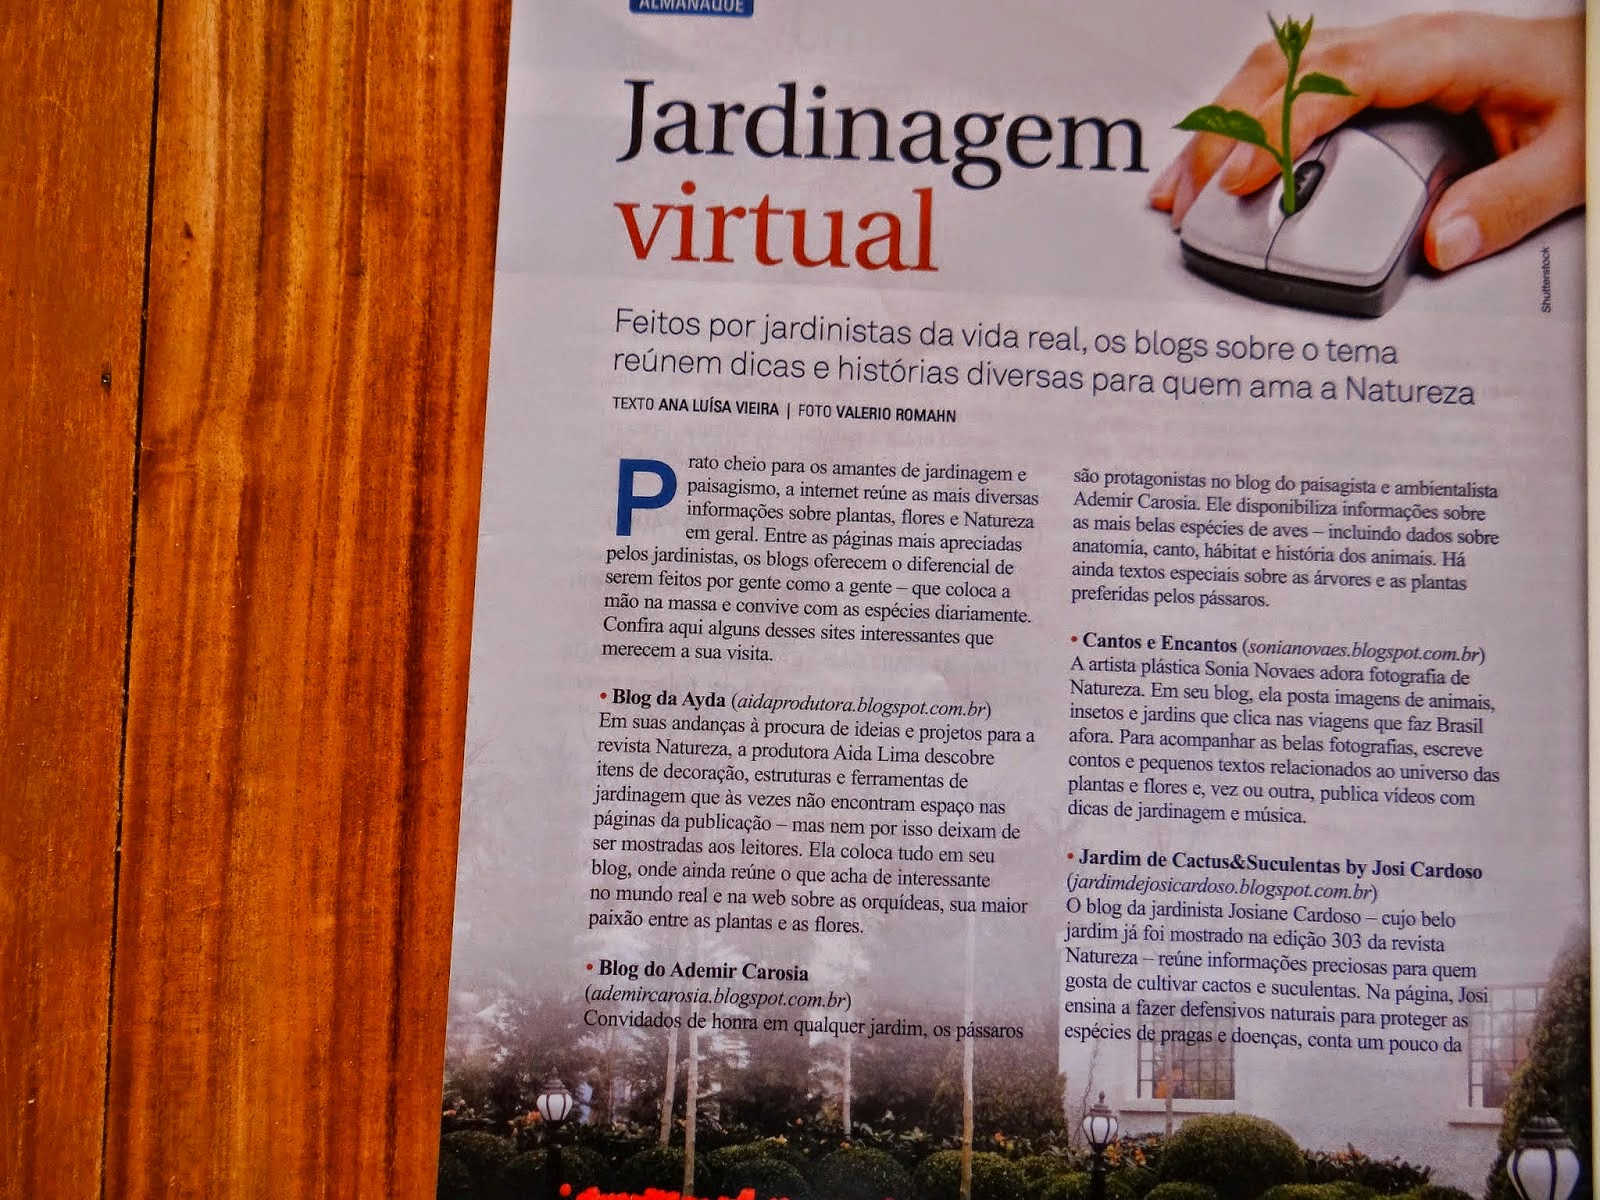 BLOG É DESTAQUE NA REVISTA NATUREZA DE ABRIL 2014